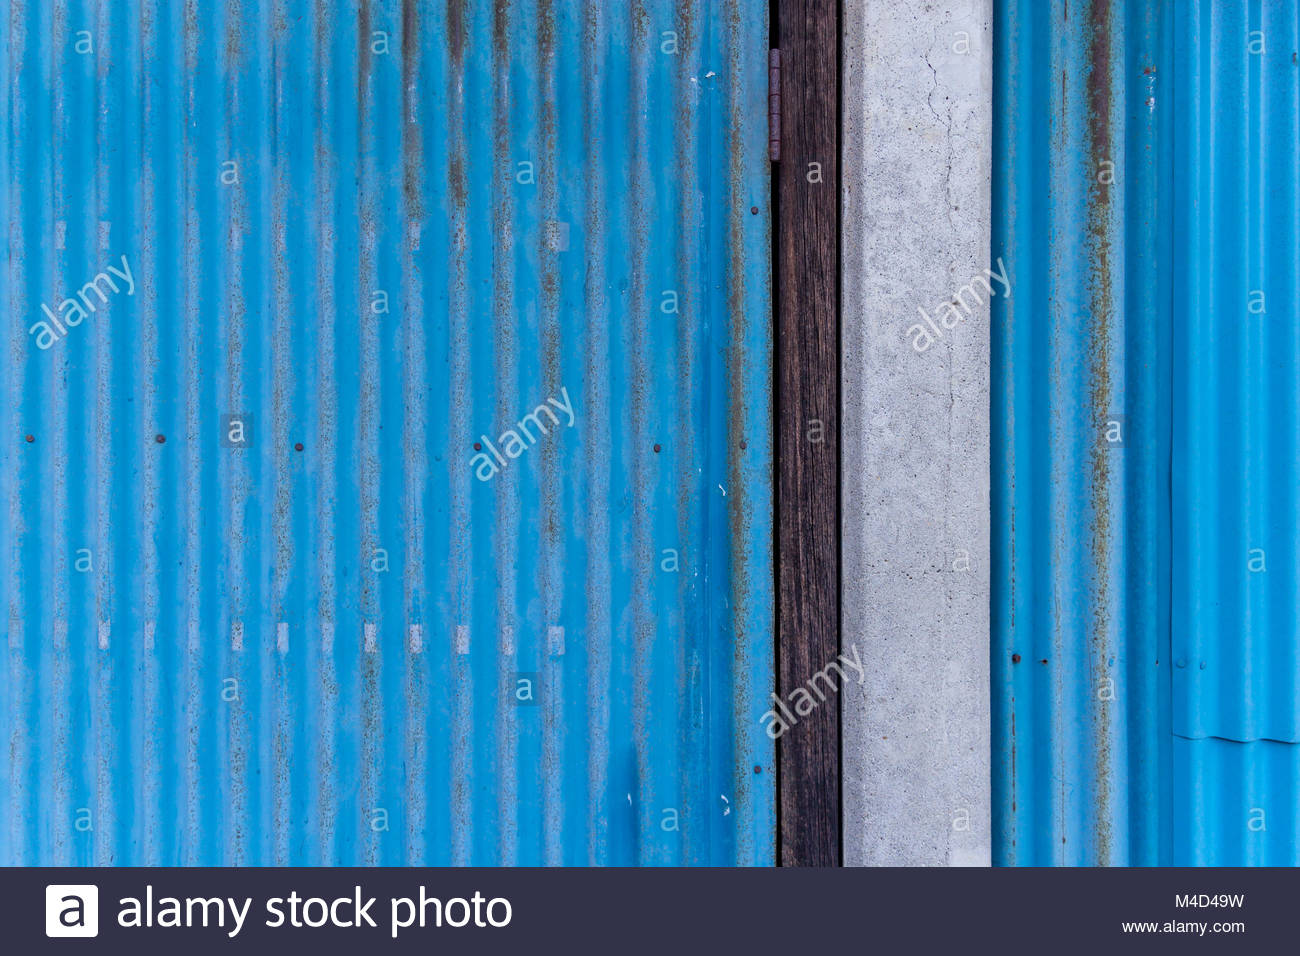 Blue corrugated metal, wood and concrete; Chiba, Japan - Stock Image